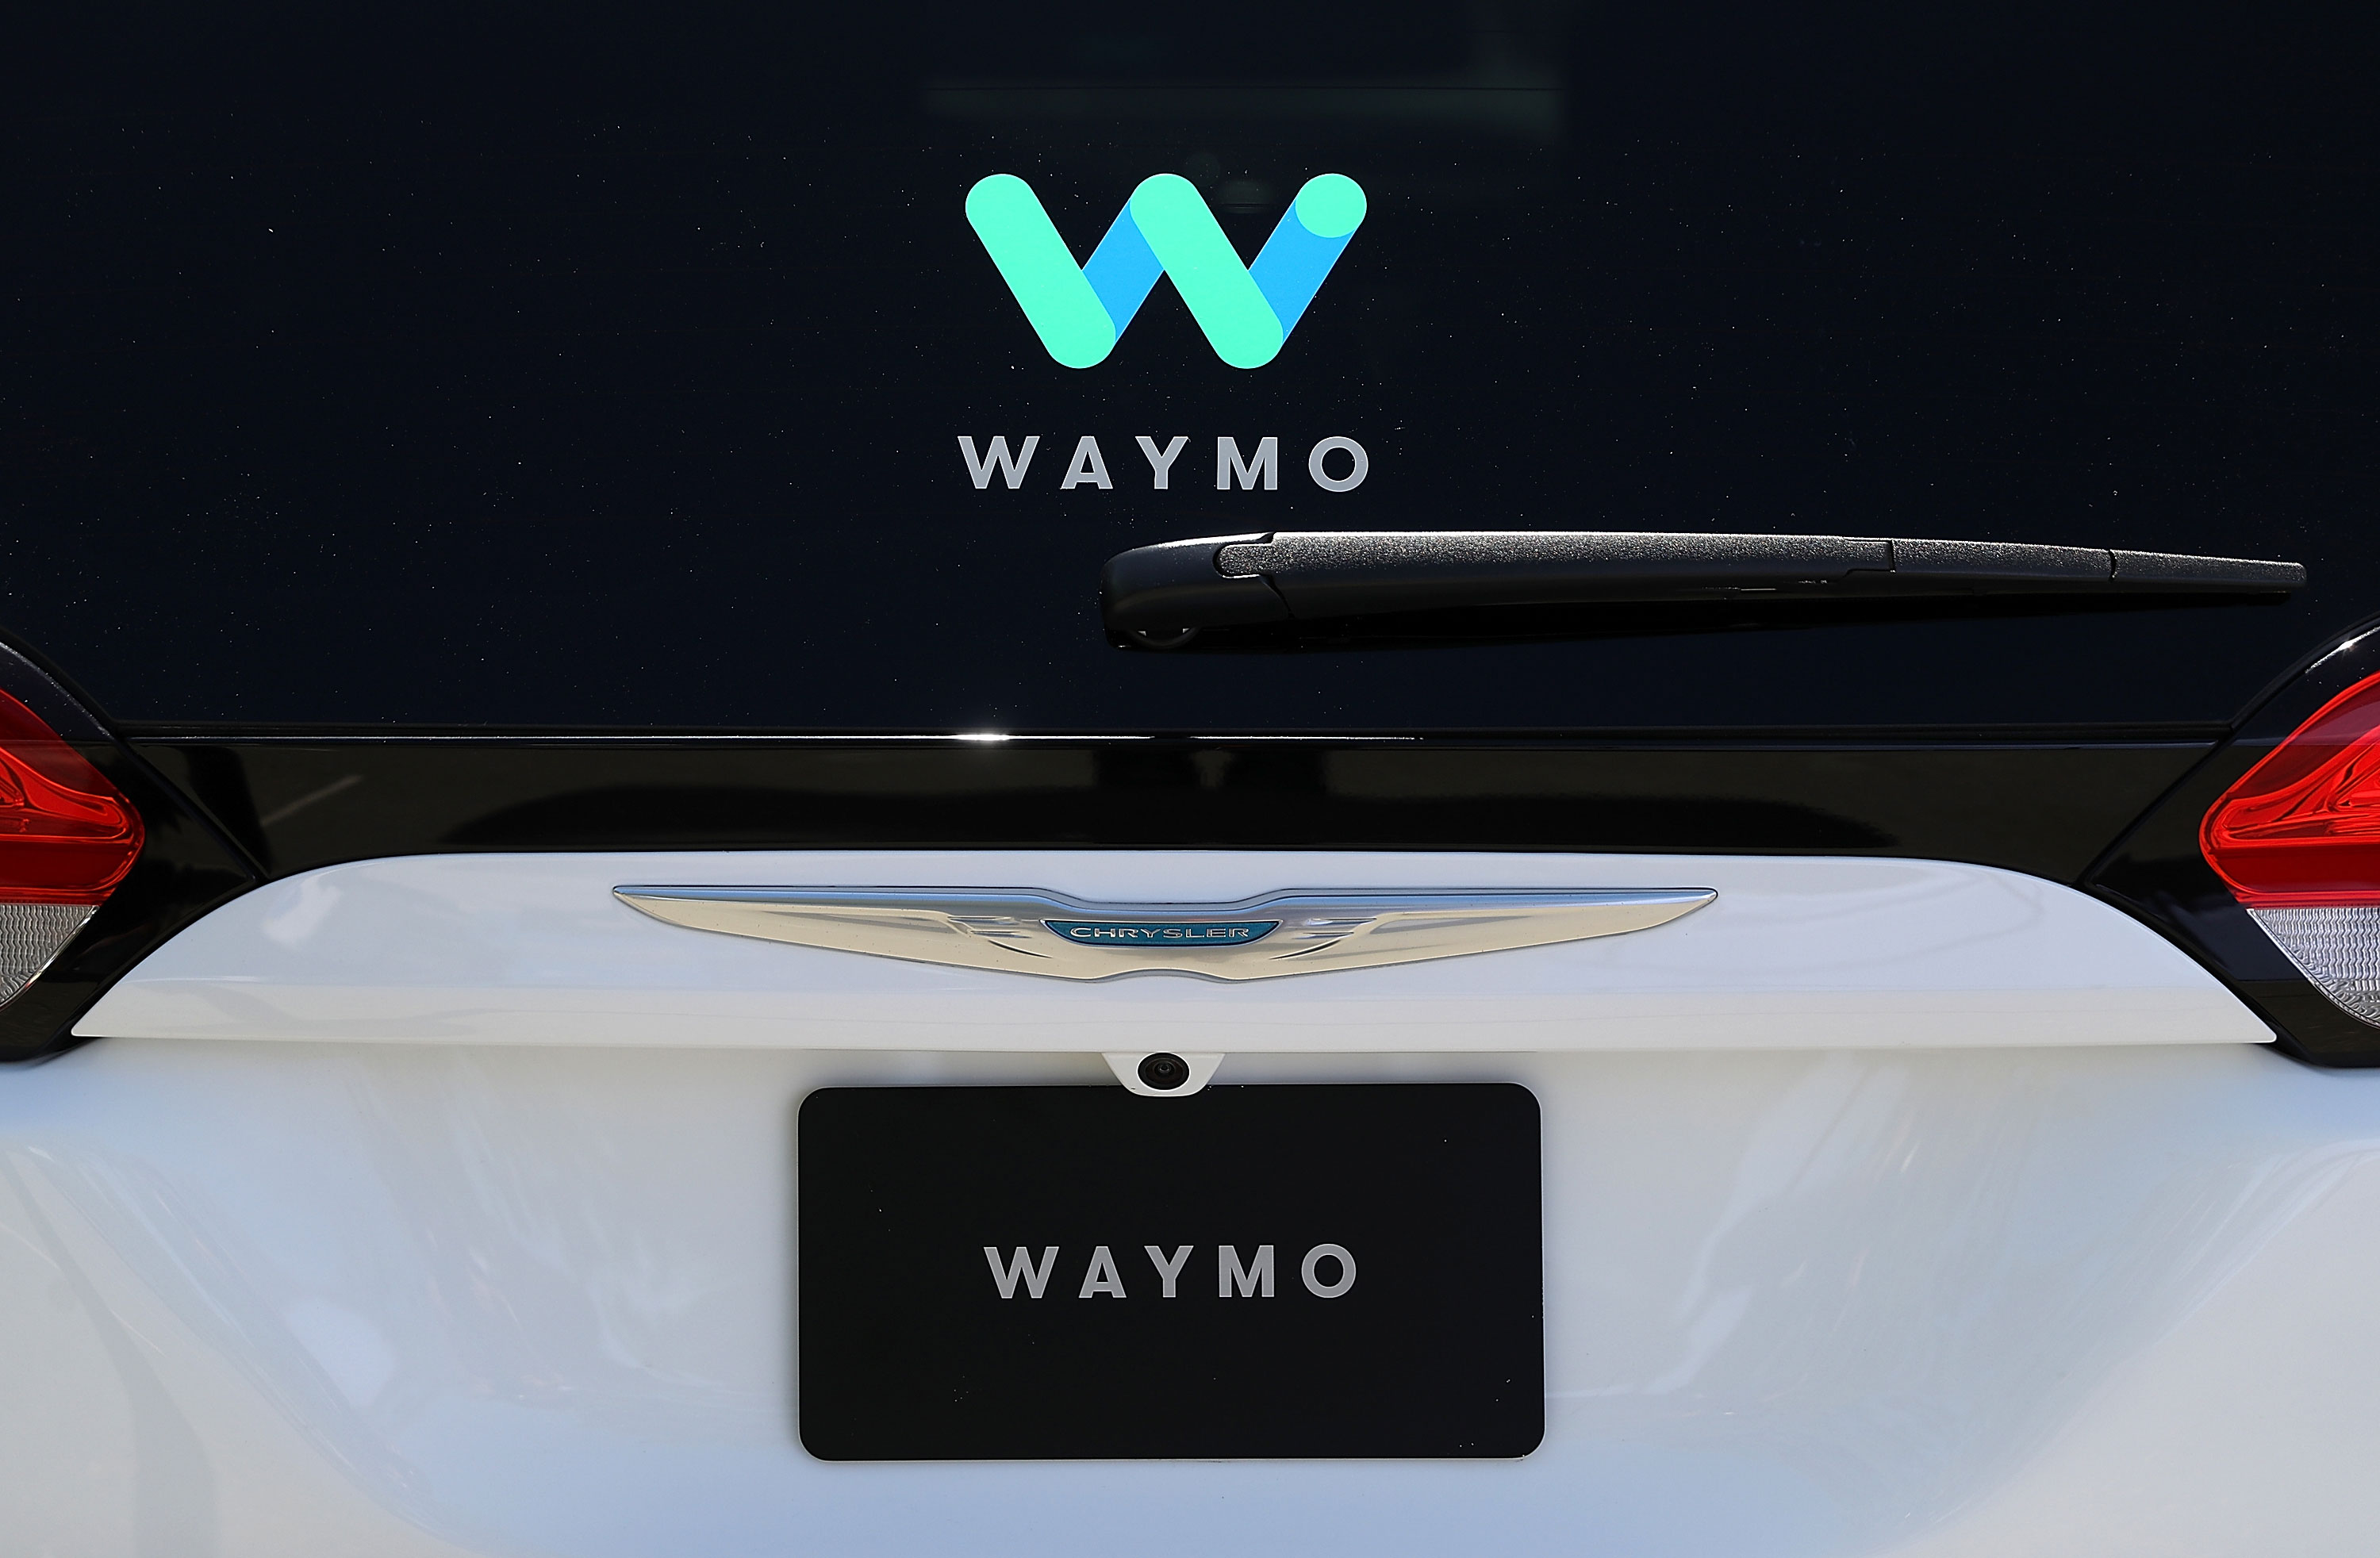 techcrunch.com - Kirsten Korosec - Waymo picks Detroit factory to build self-driving cars